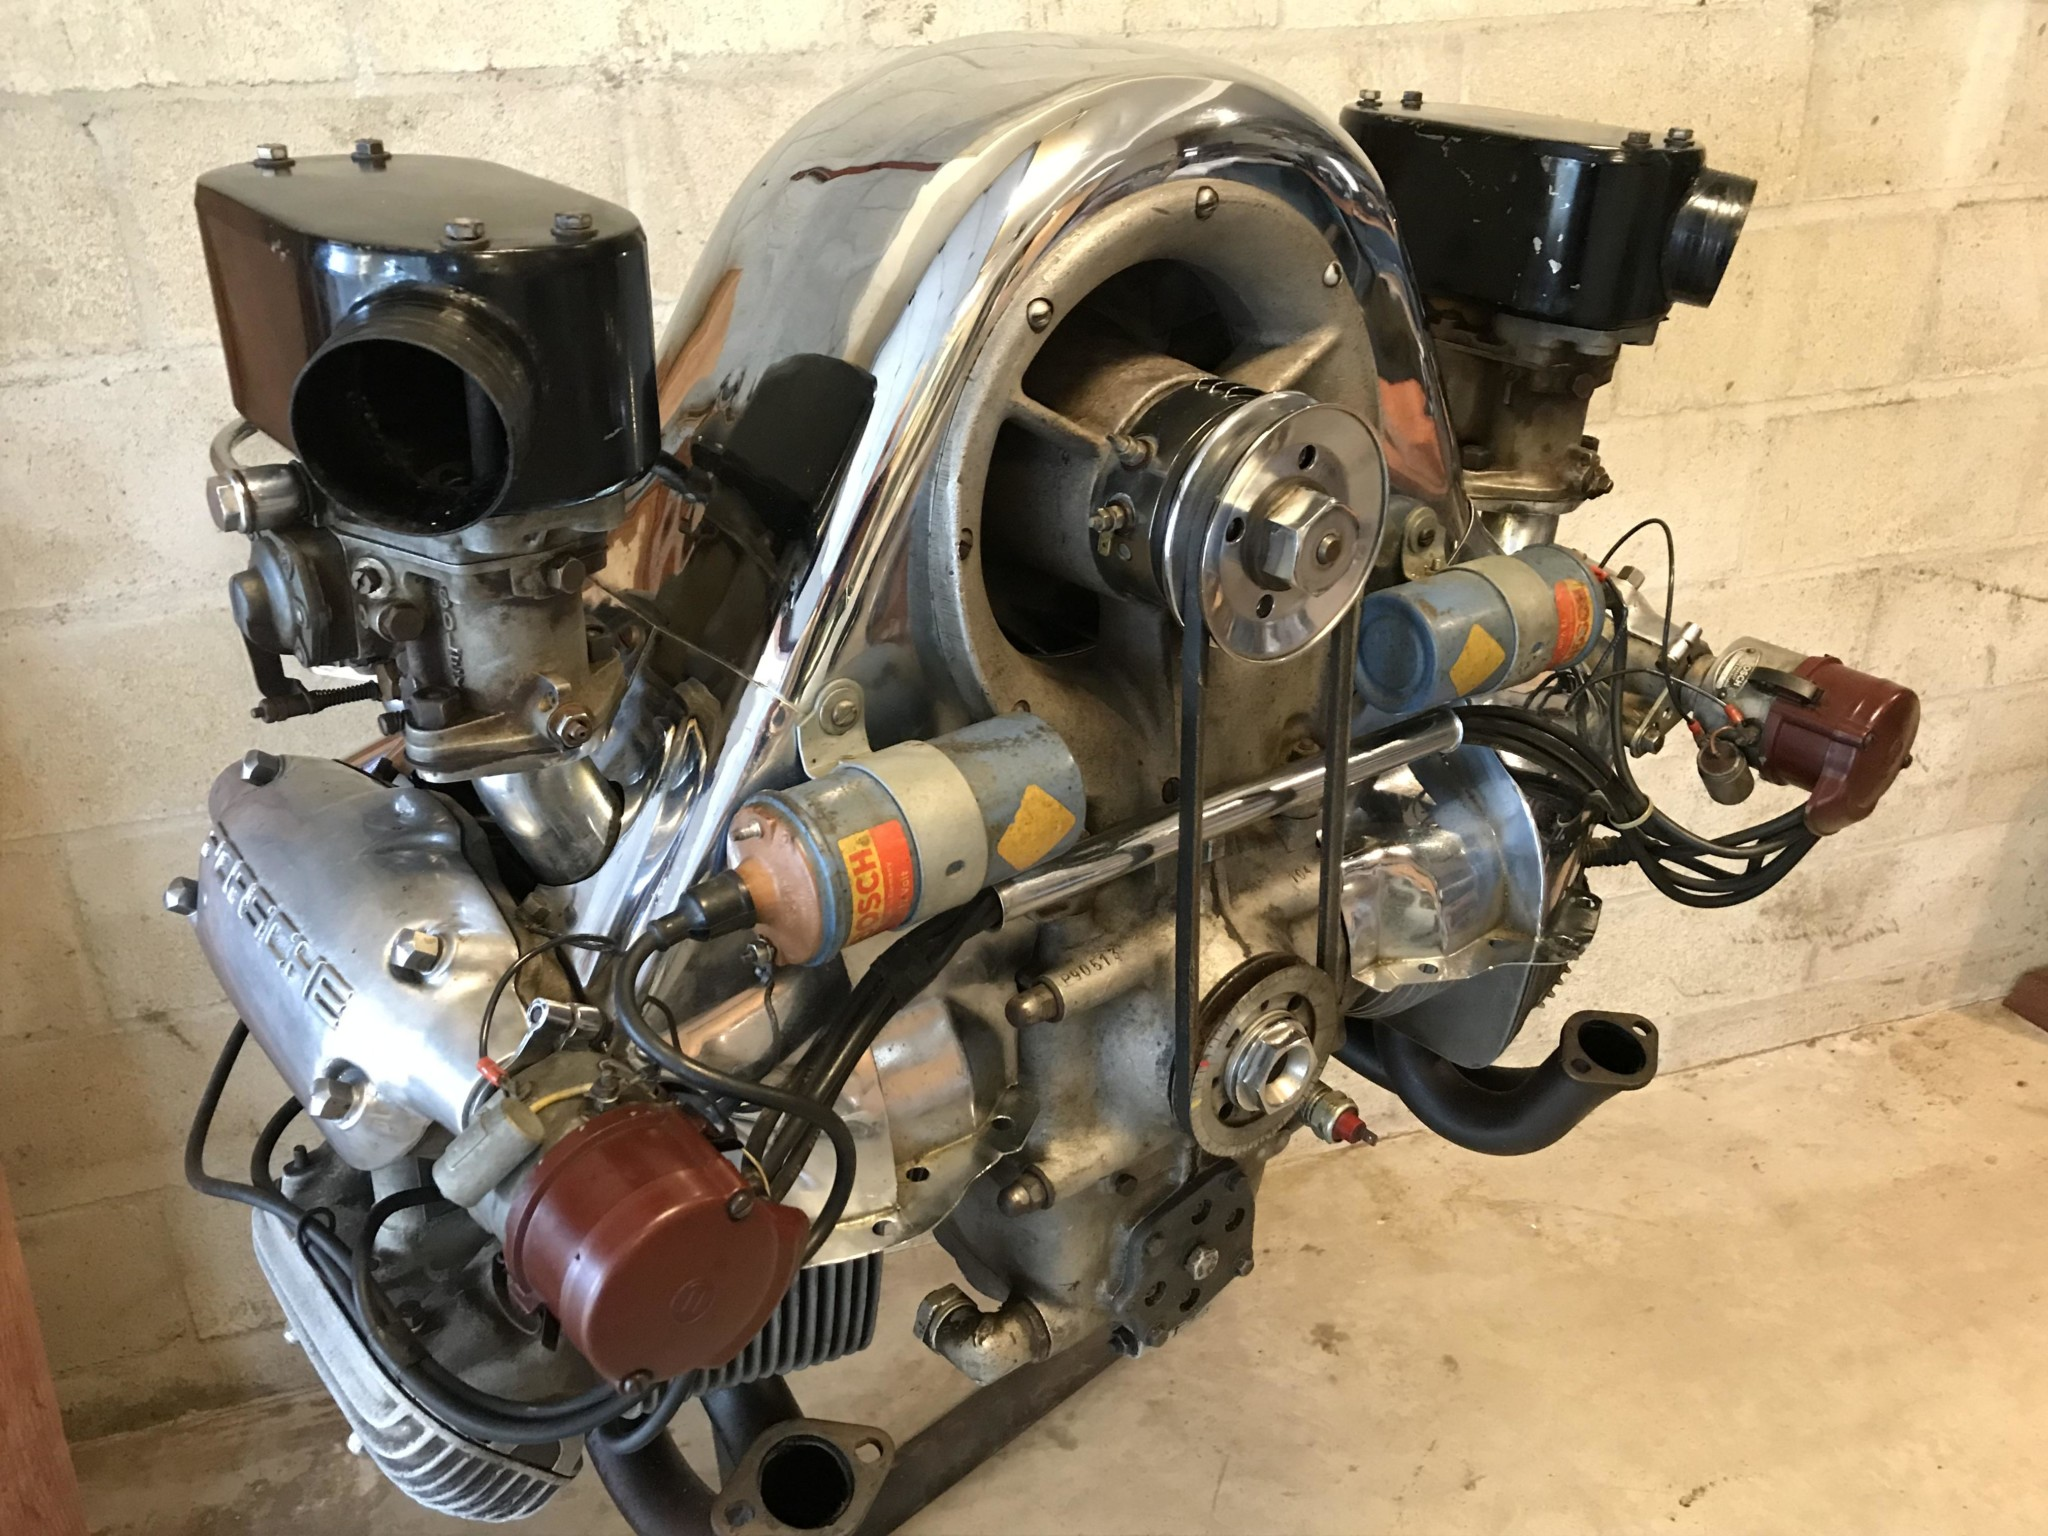 This 64,Year,Old Aircooled Porsche Engine Was Bid to